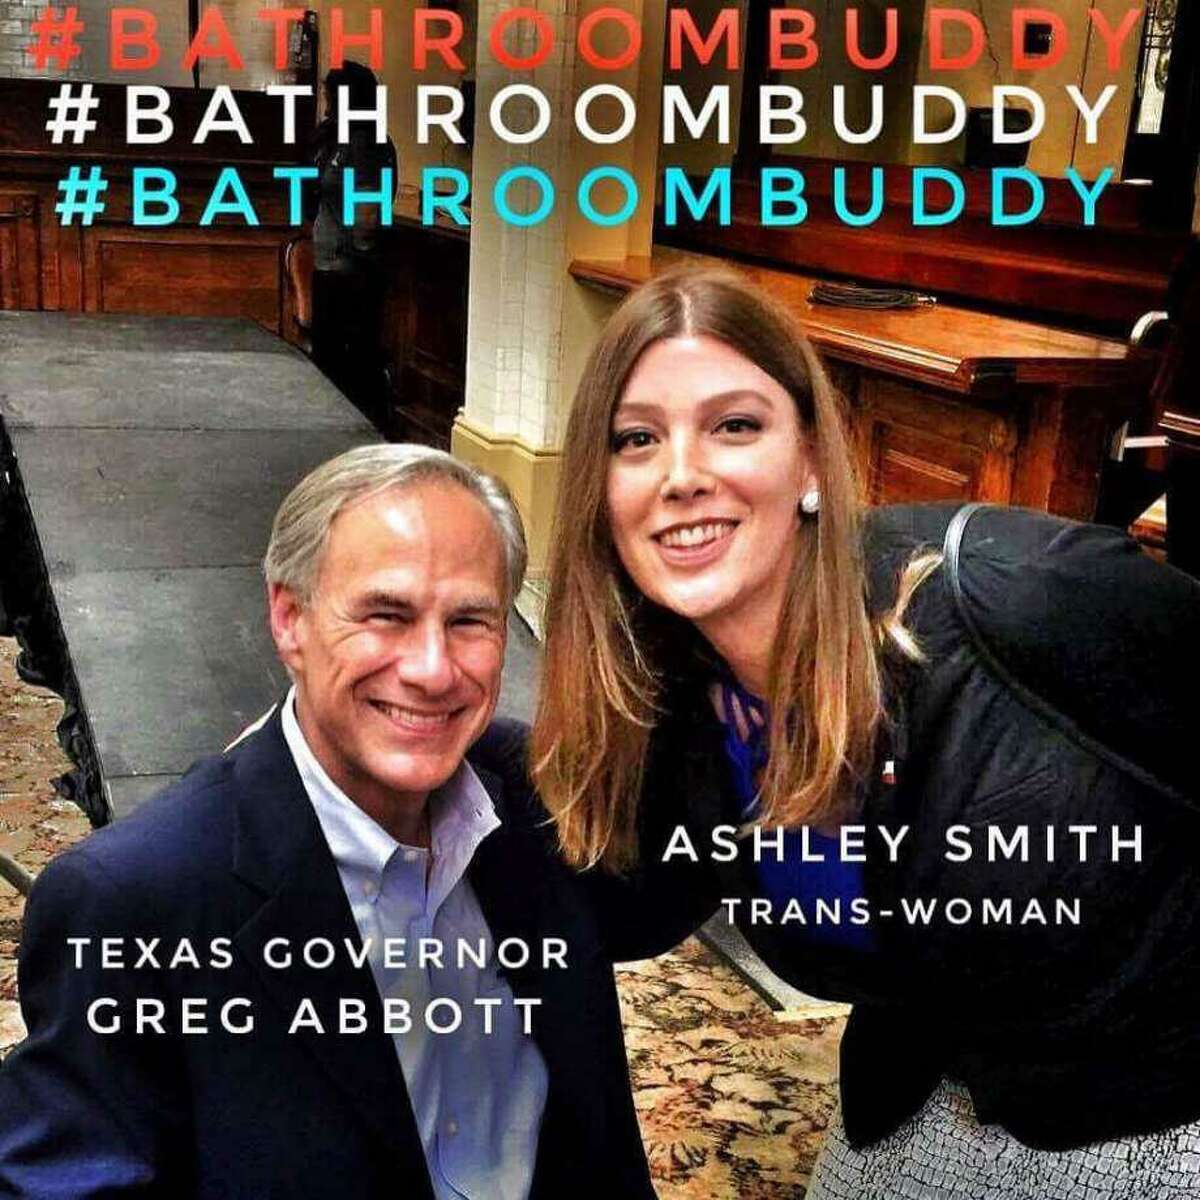 This photo of transgender activist Ashley Smith with Abbott went viral. Such activists have argued that their gender identification trumps their gender of birth, but some say that should not be so.